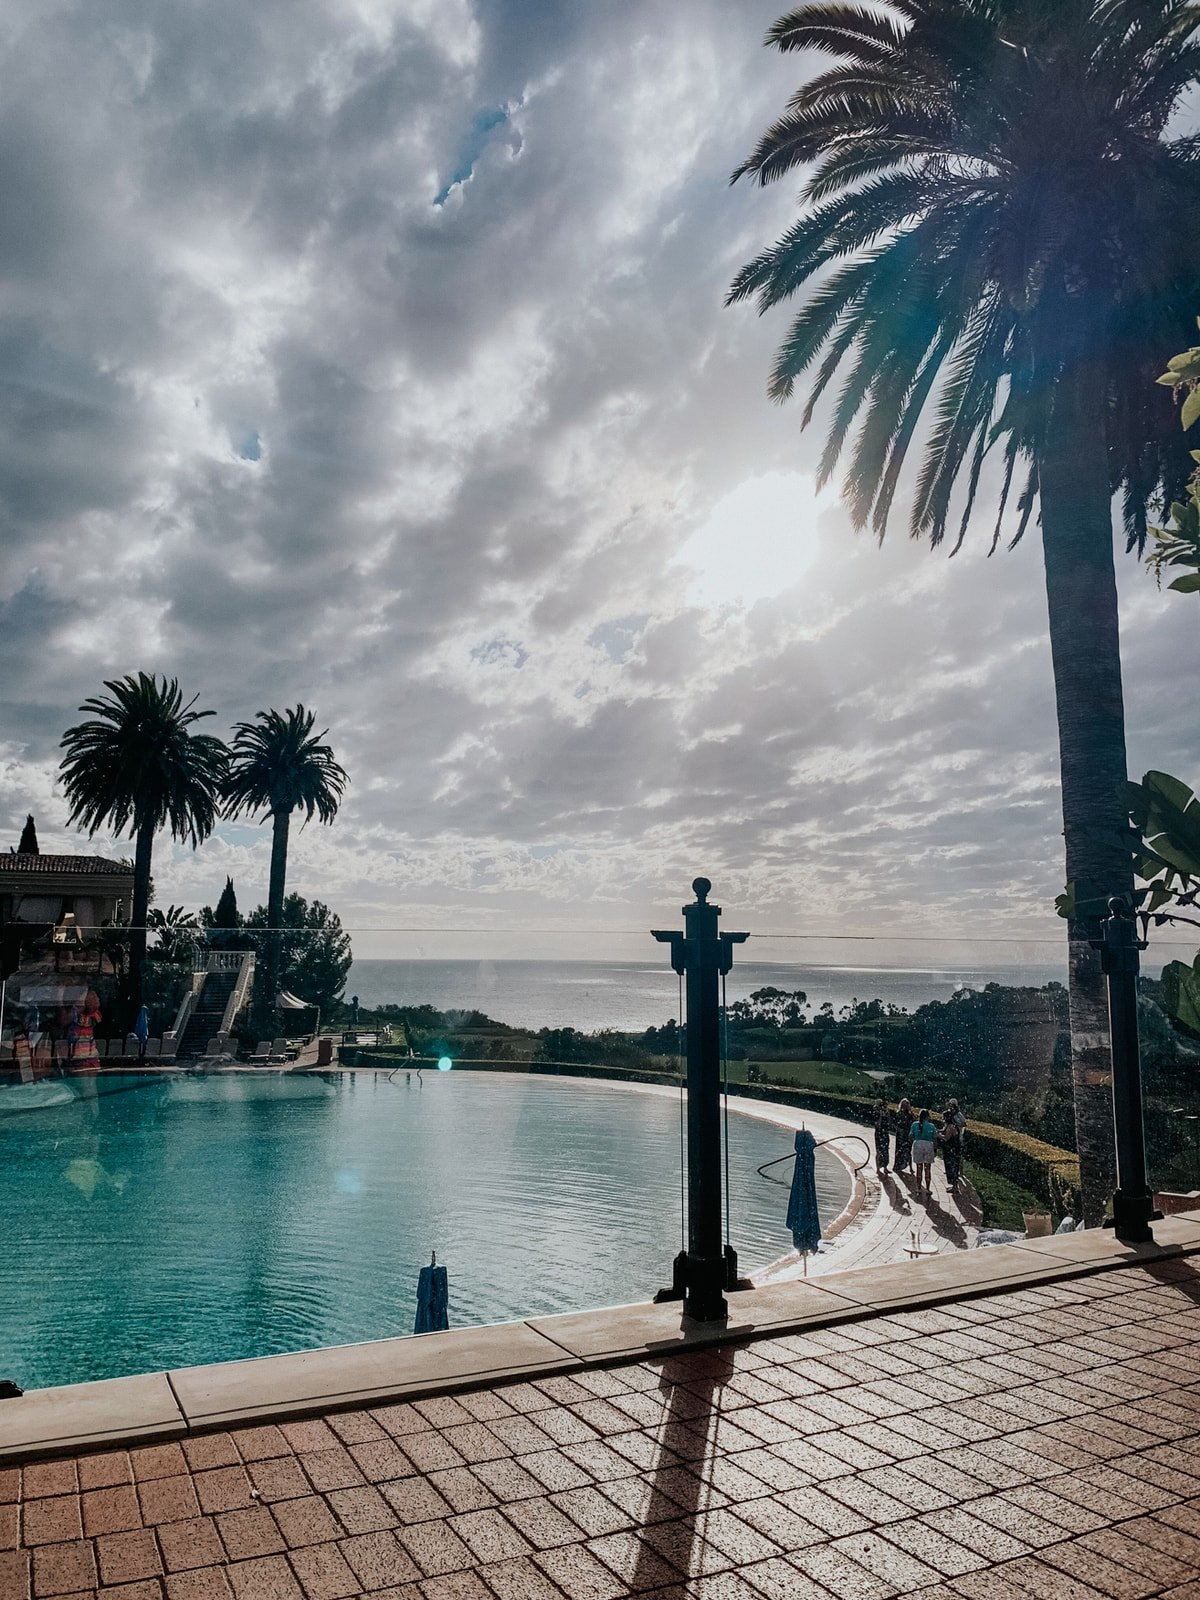 Pelican Hill Resort - one of the best places to stay in Orange County